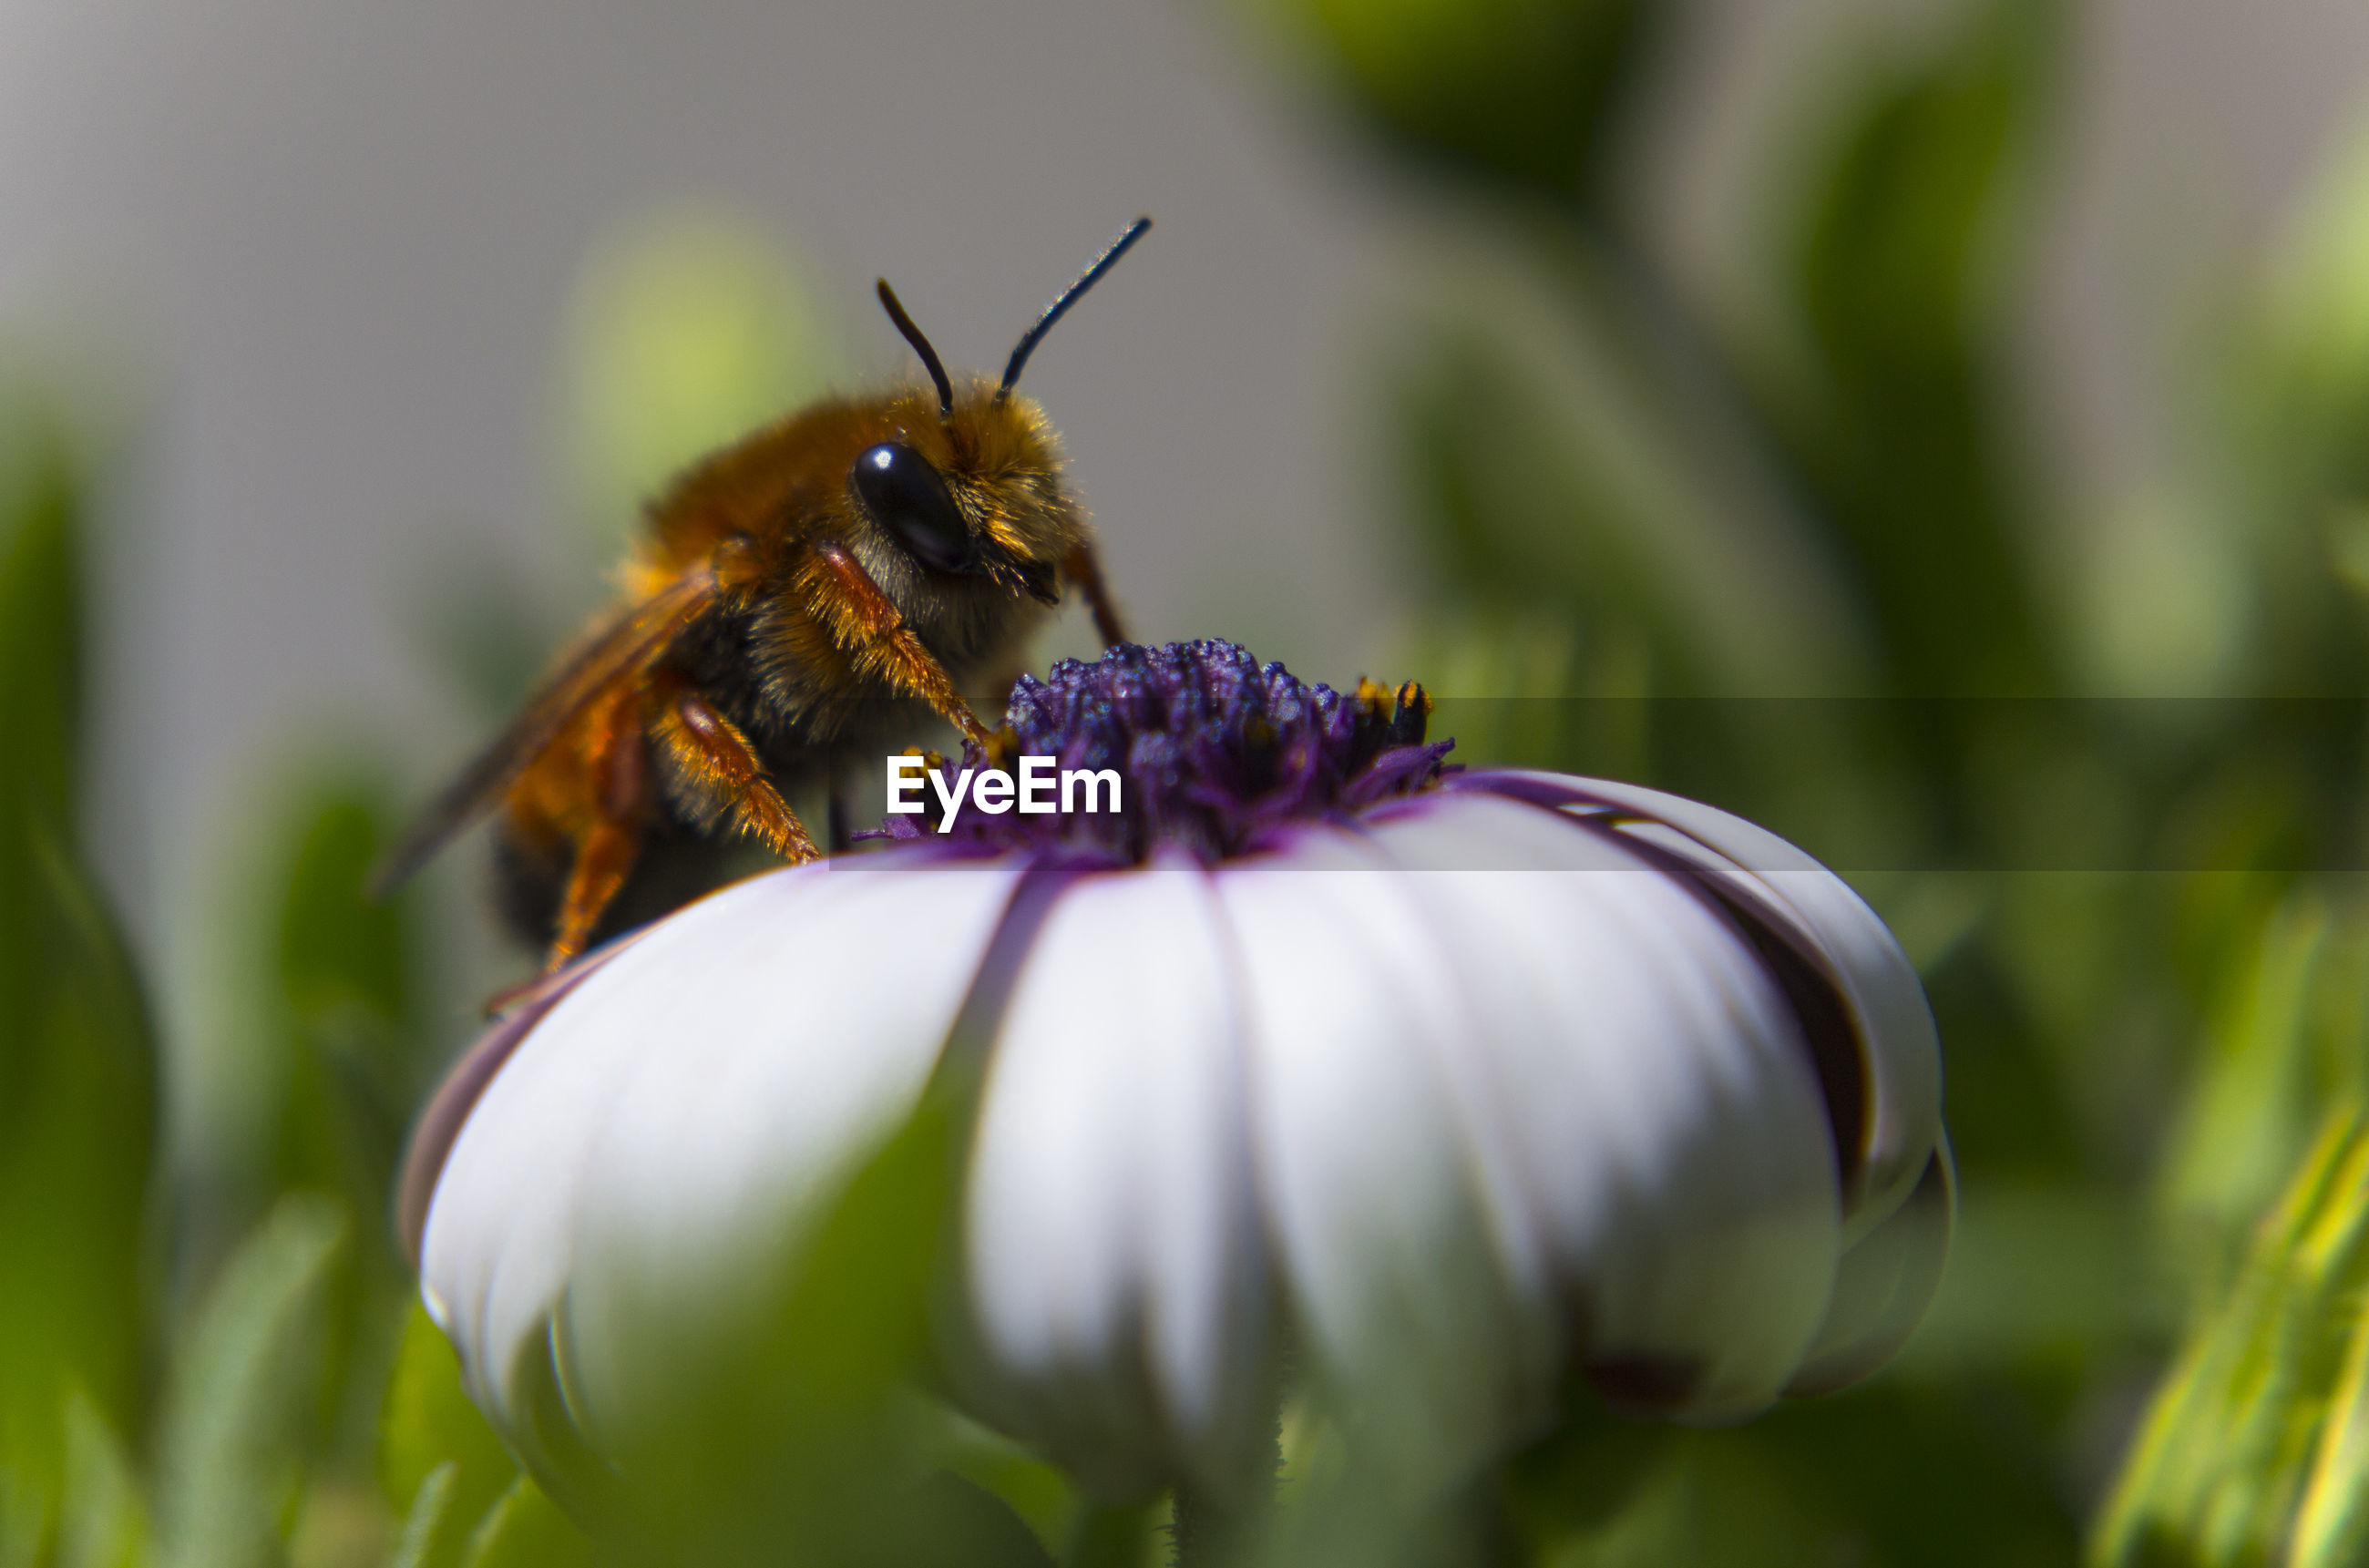 Bee pollinating on flower blooming outdoors